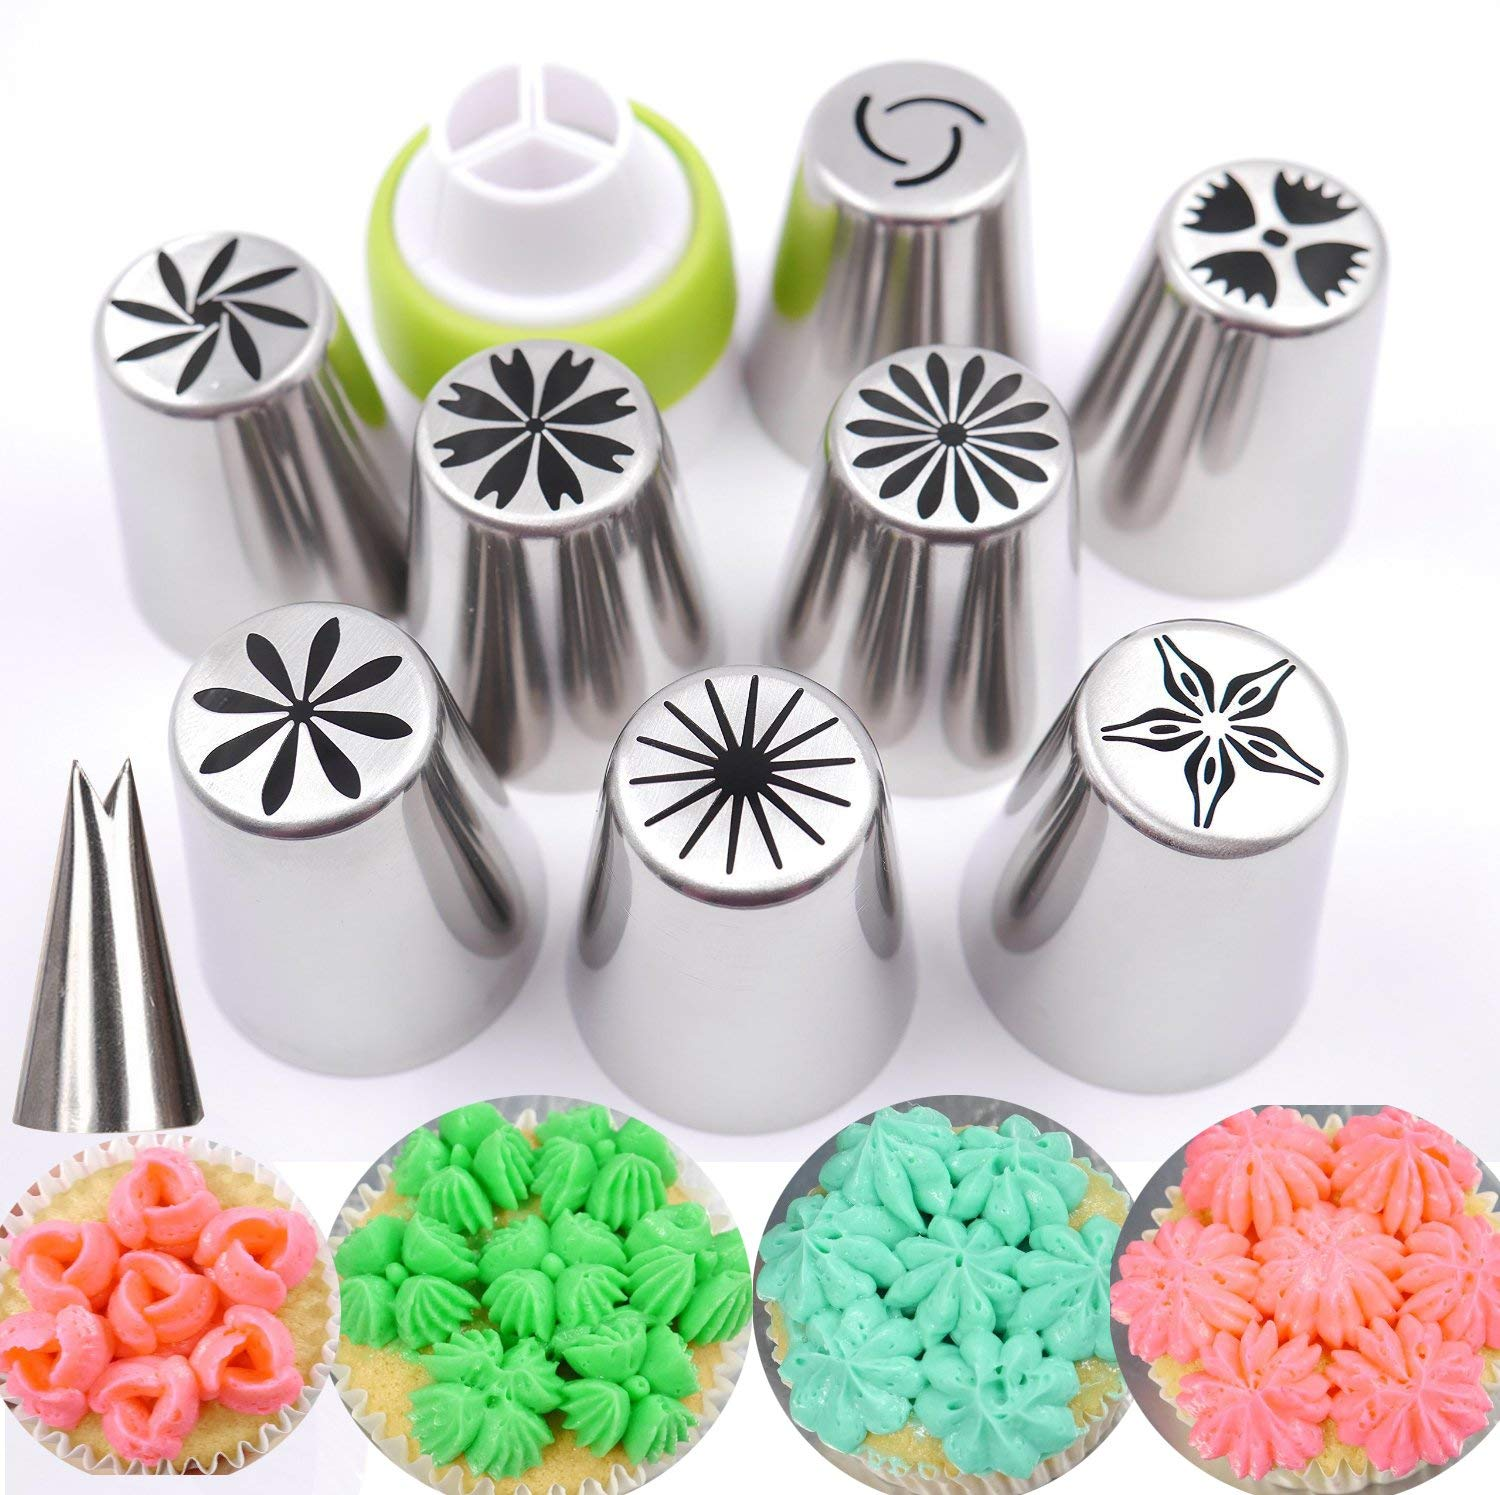 KOOTIPS Russian Piping Tips 20 Pcs/SET 8 Extra Large Stainless Steel Pastry Nozzle Tips and 1 Leaf Tips, 1 XL Coupler with 10 Disposable Pastry Icing Bags